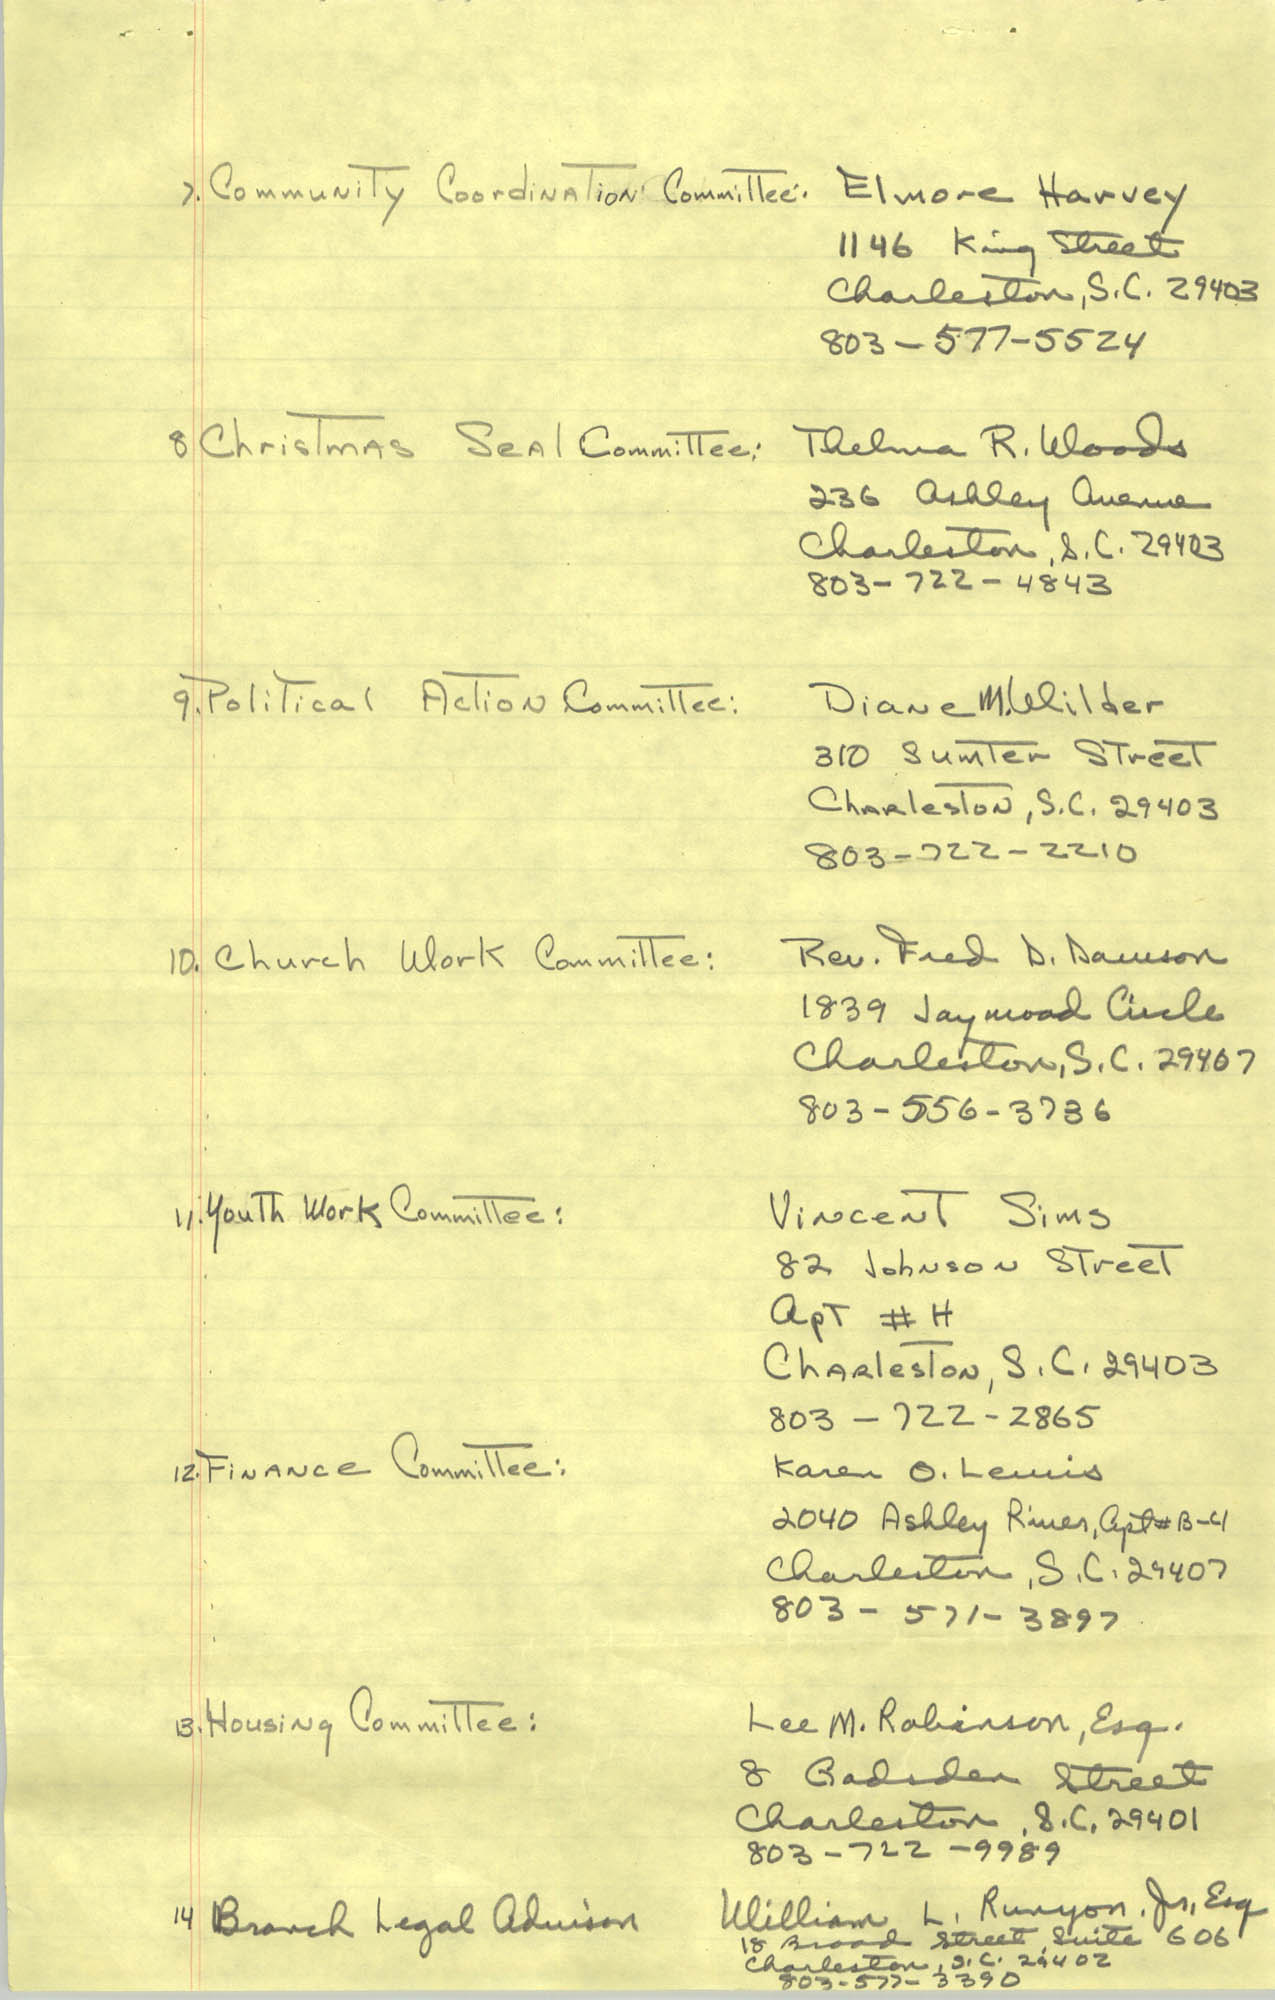 1982-83 Roster of Officials of the Charleston, South Carolina Branch of the NAACP, Page 5